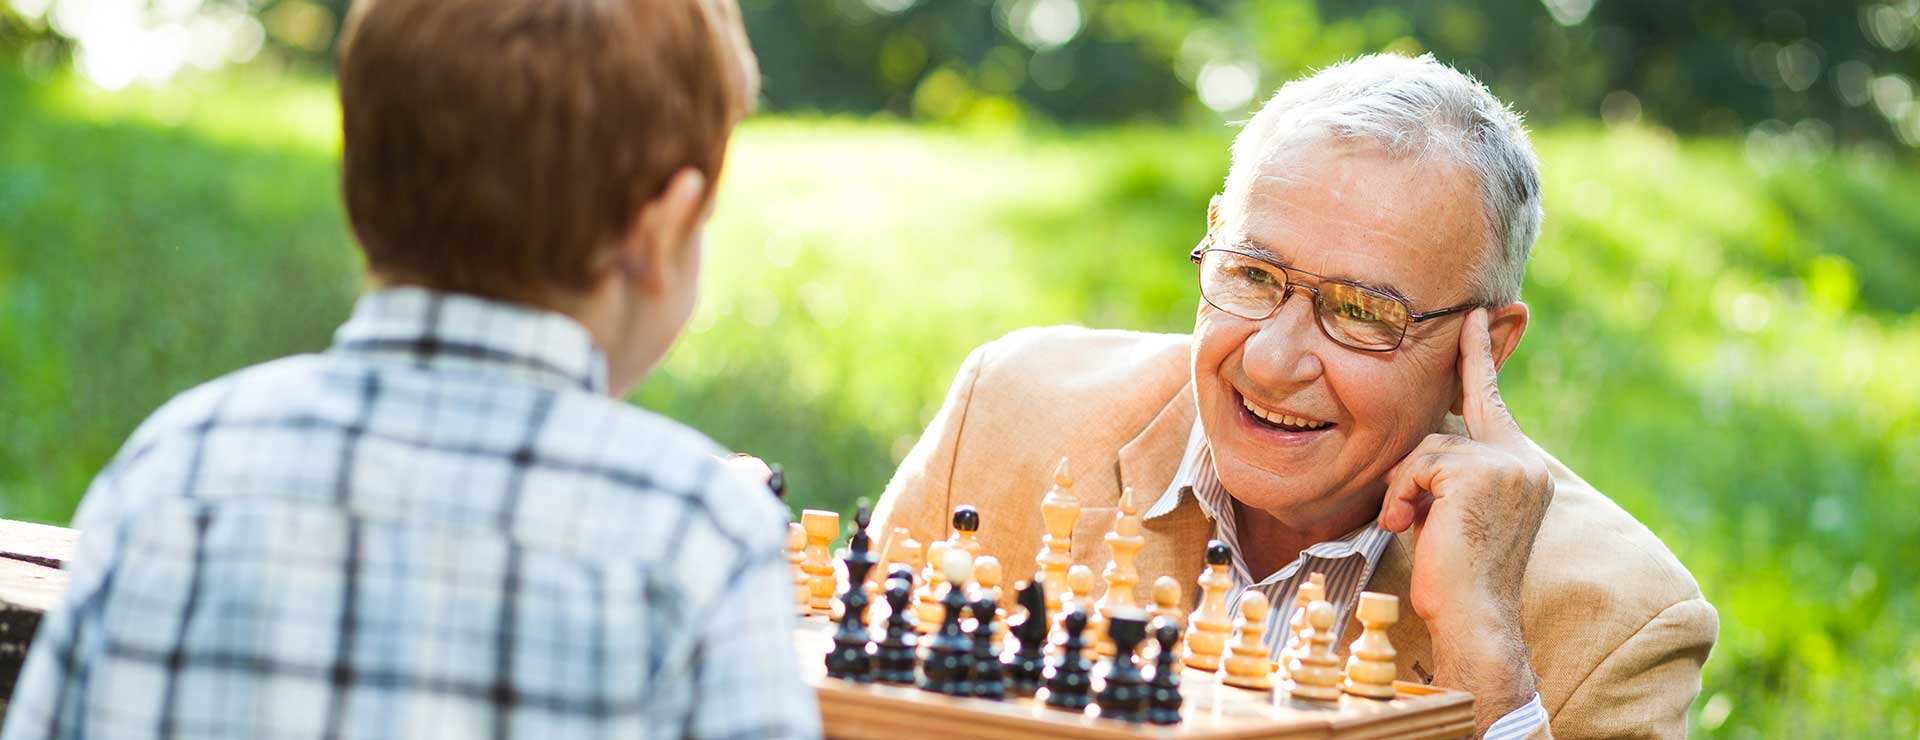 senior man plays chess with child